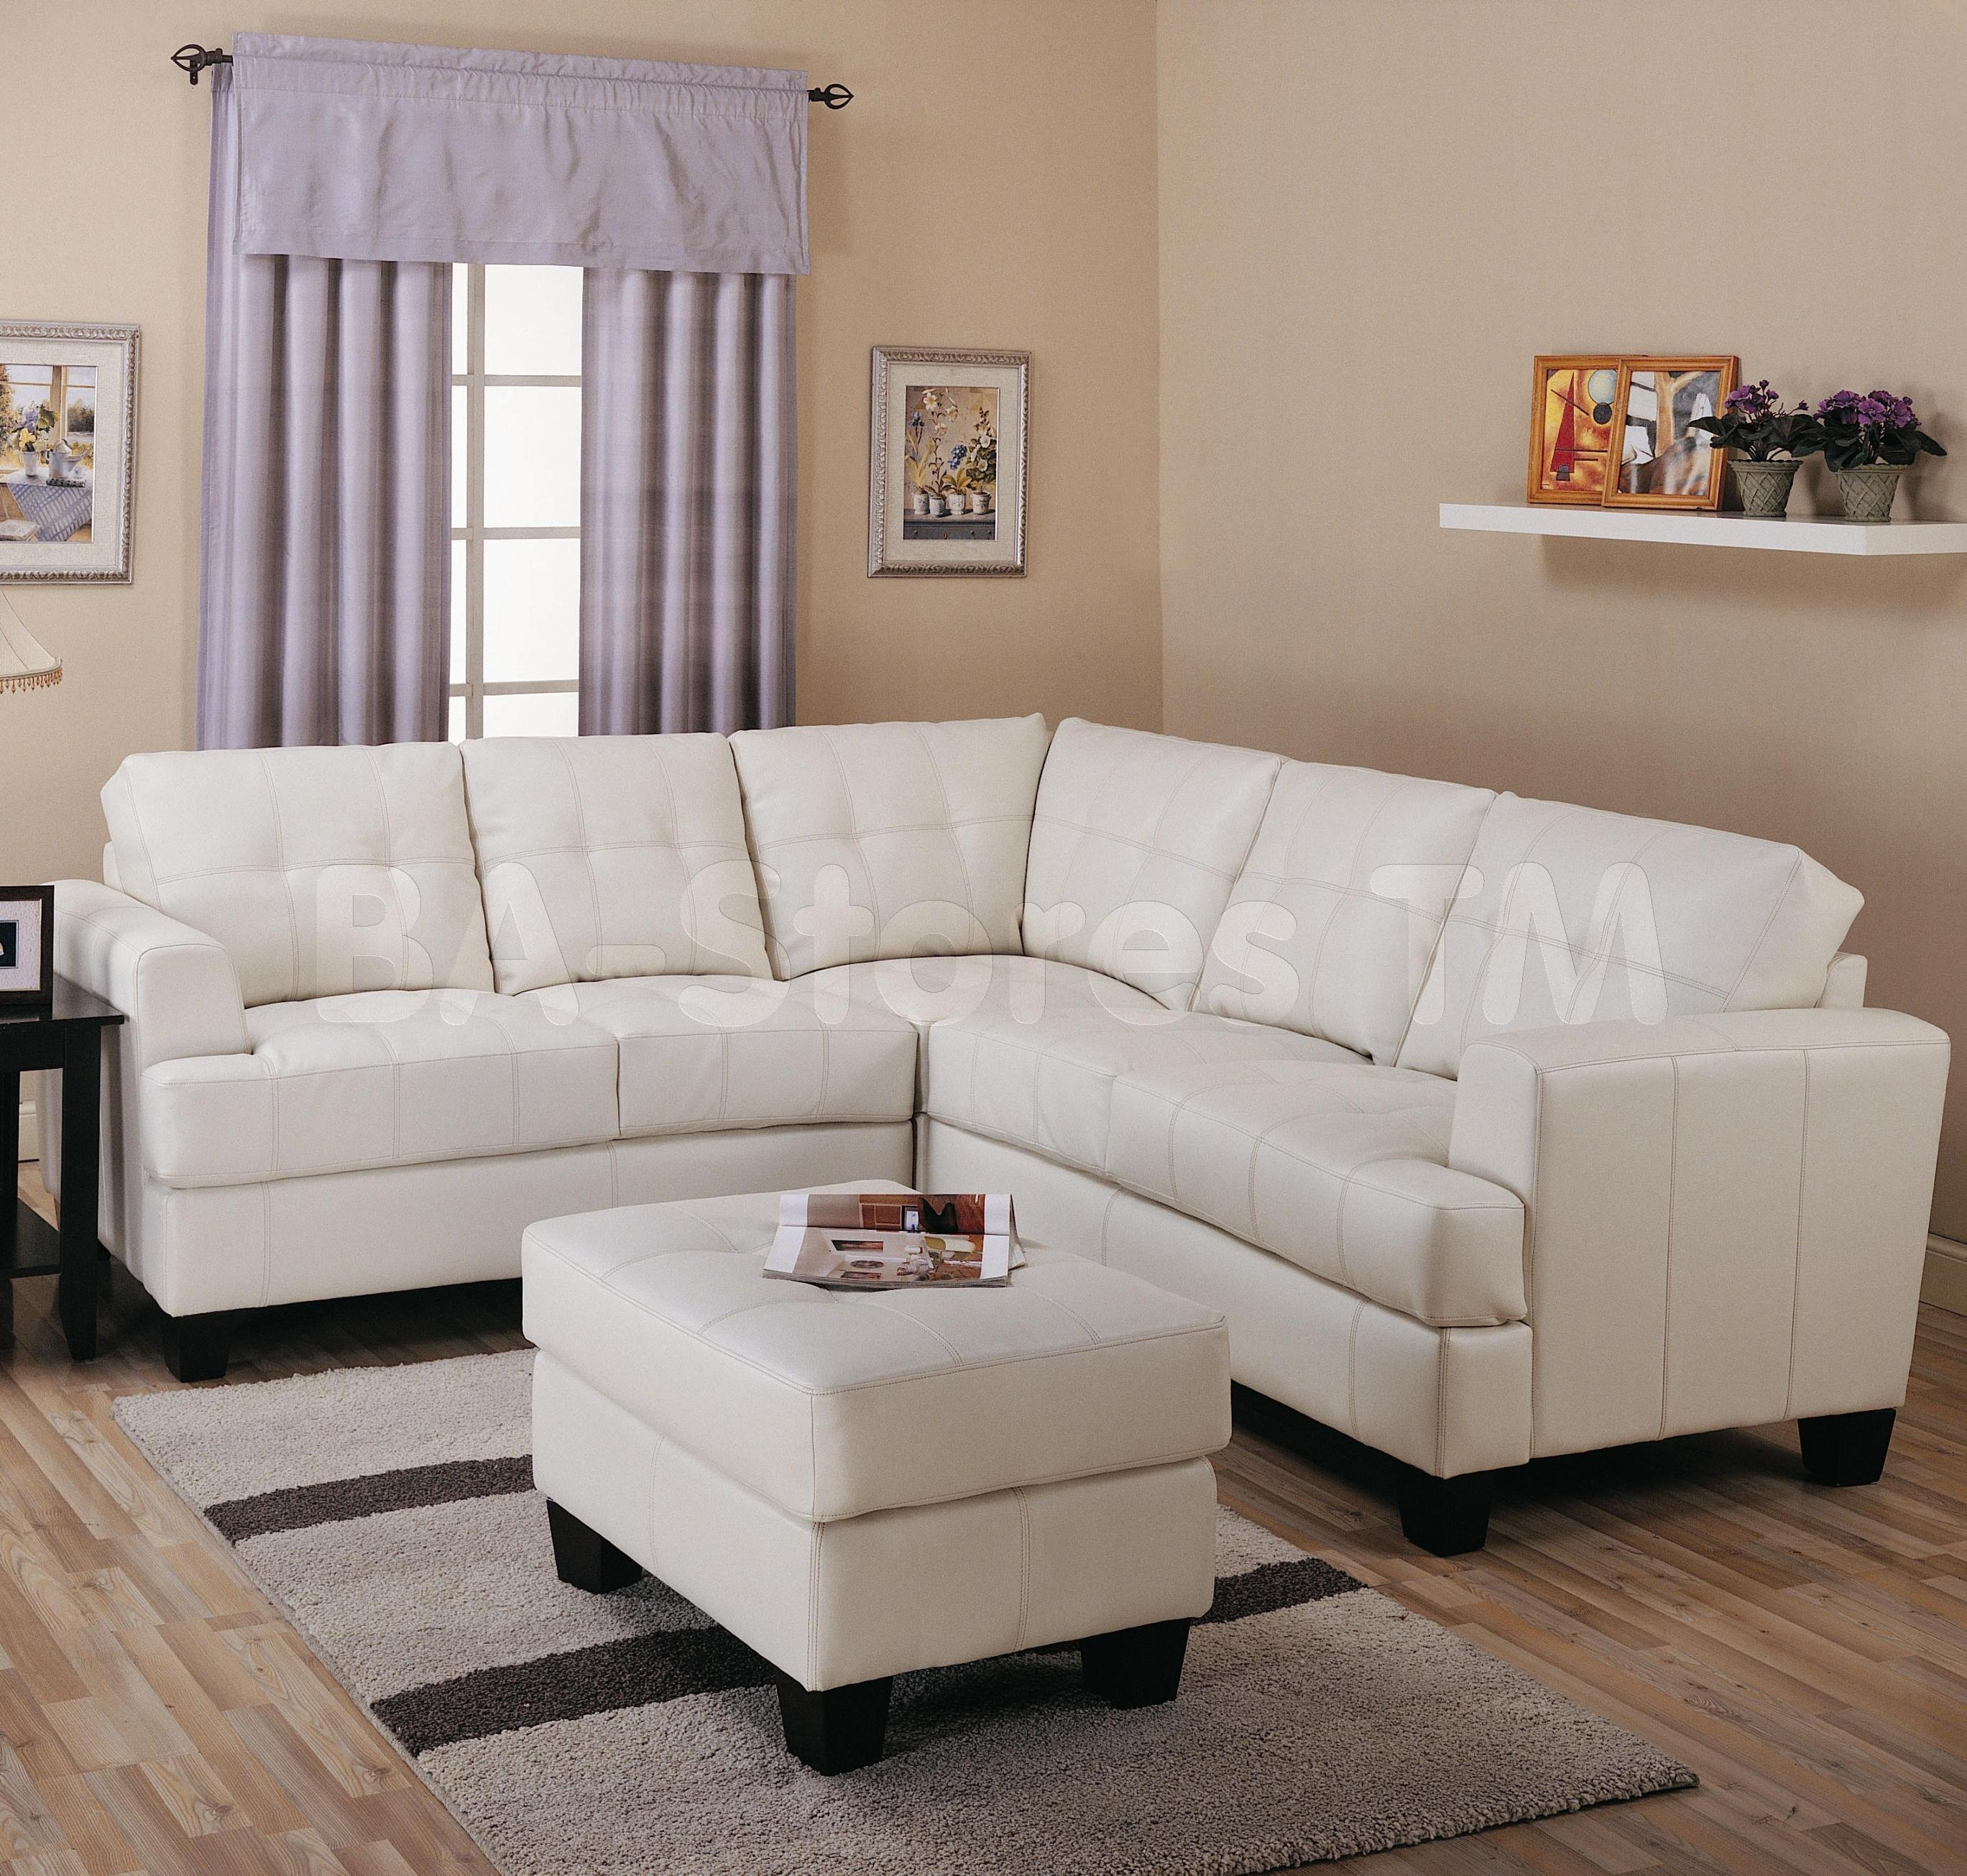 Furniture : Sectional Sofa $500 Recliner With Lift Corner Couch Intended For Jamaica Sectional Sofas (View 9 of 10)